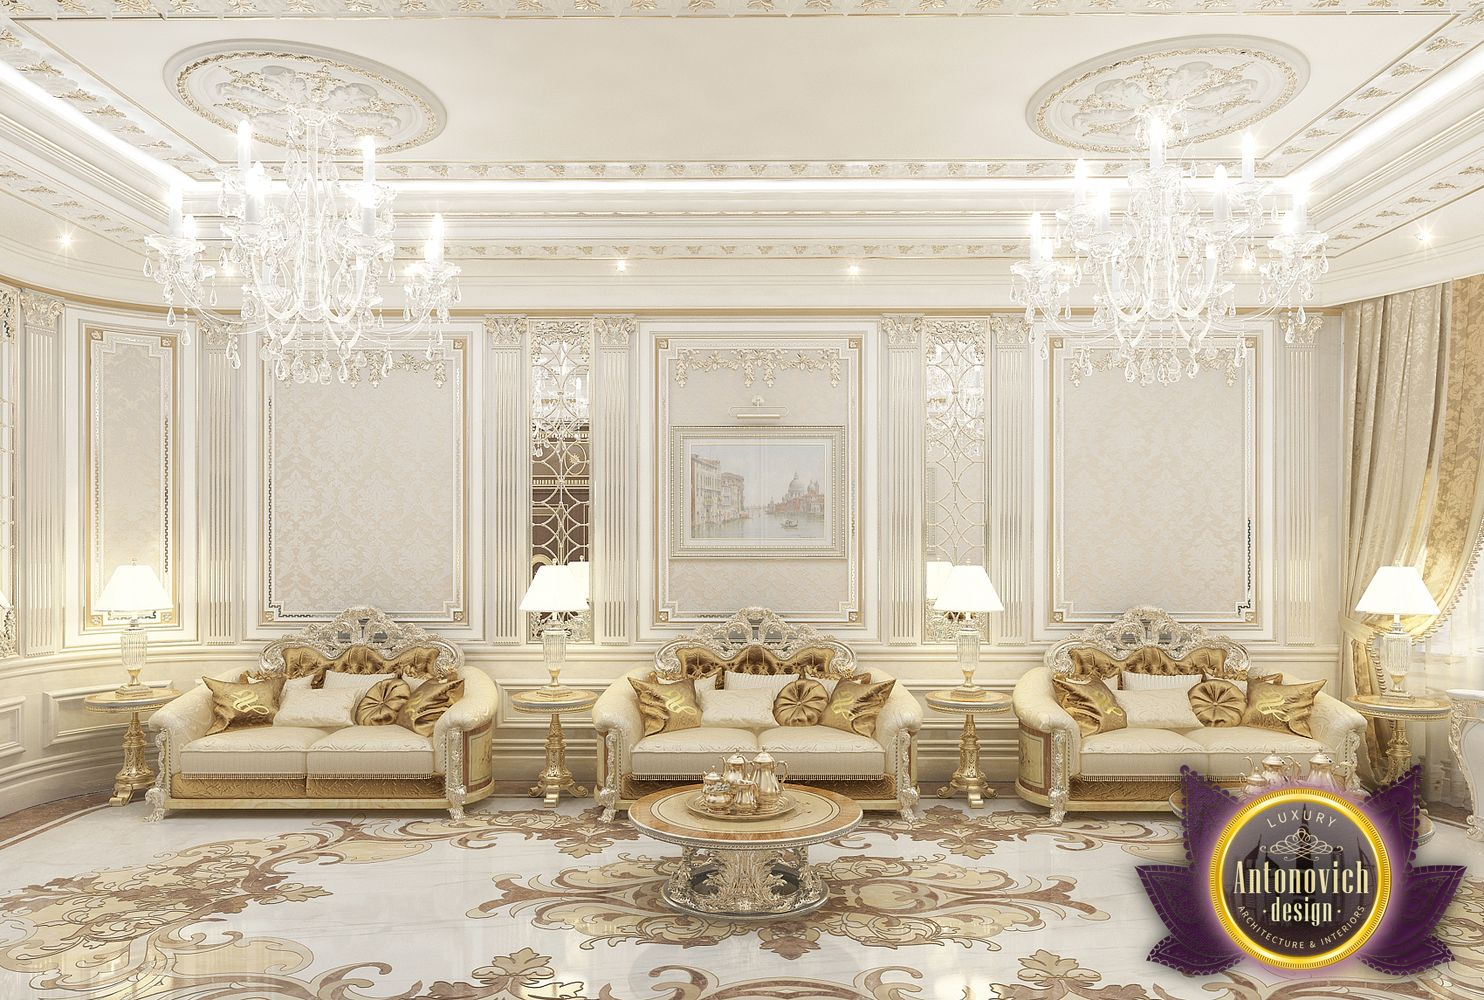 Luxury antonovich design uae living room interior design - Room interior designs ...